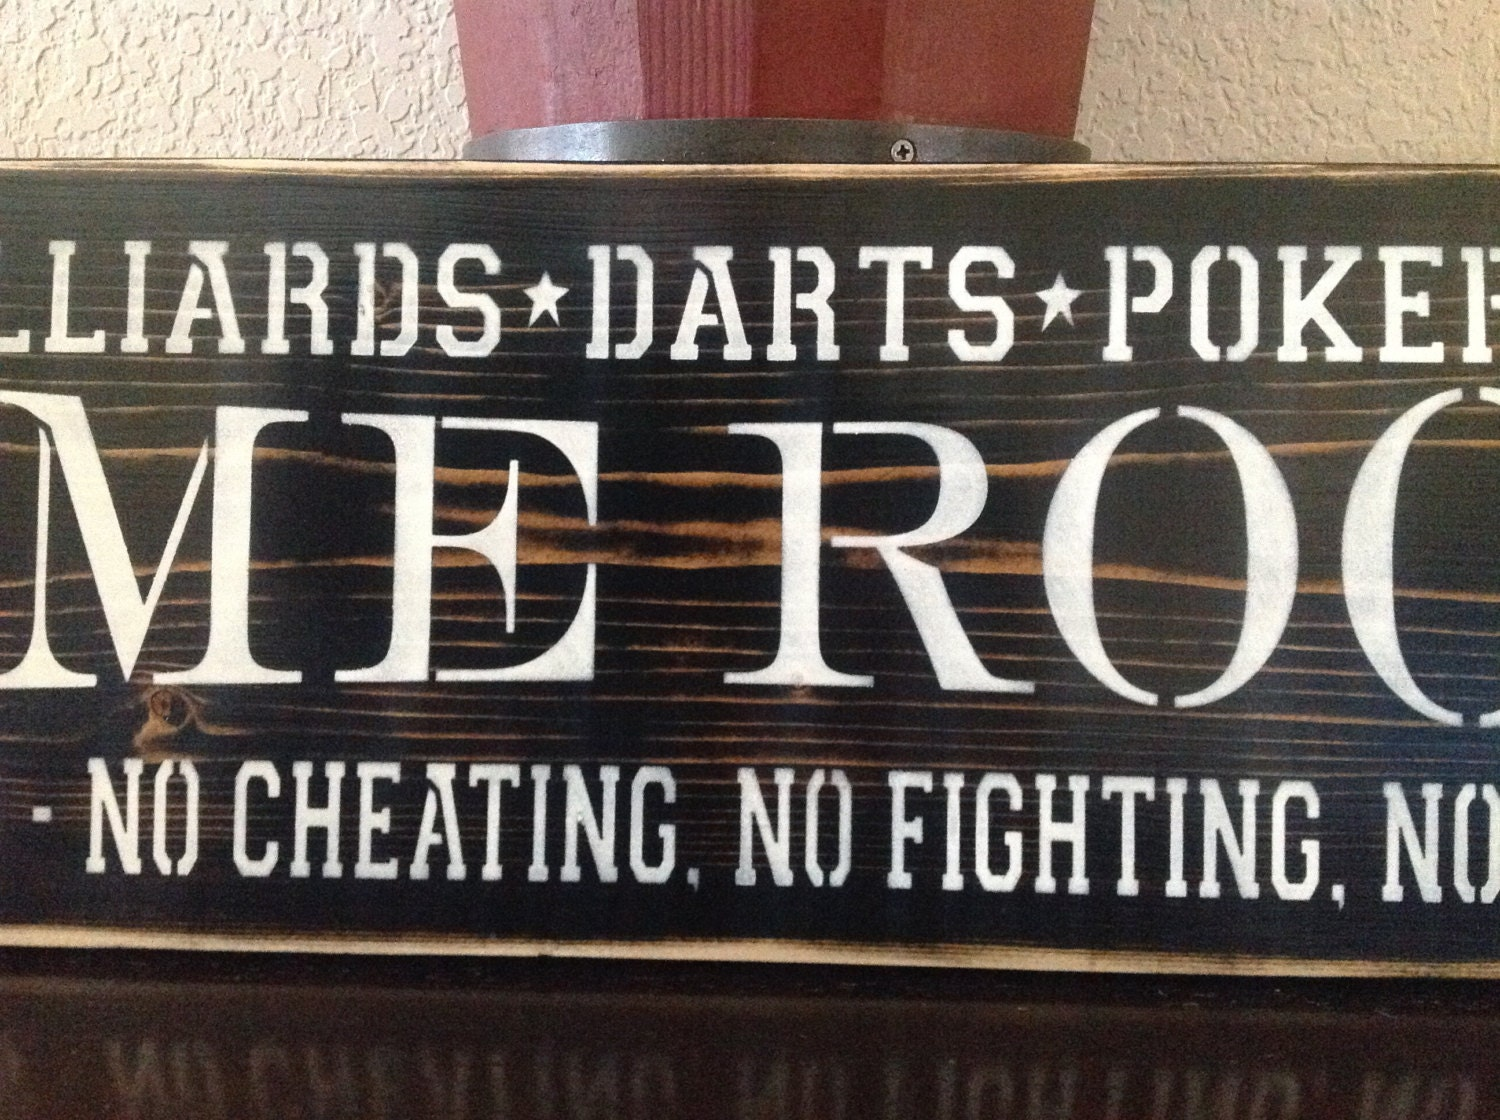 Game Room Billiards Darts Poker House Rules No Cheating